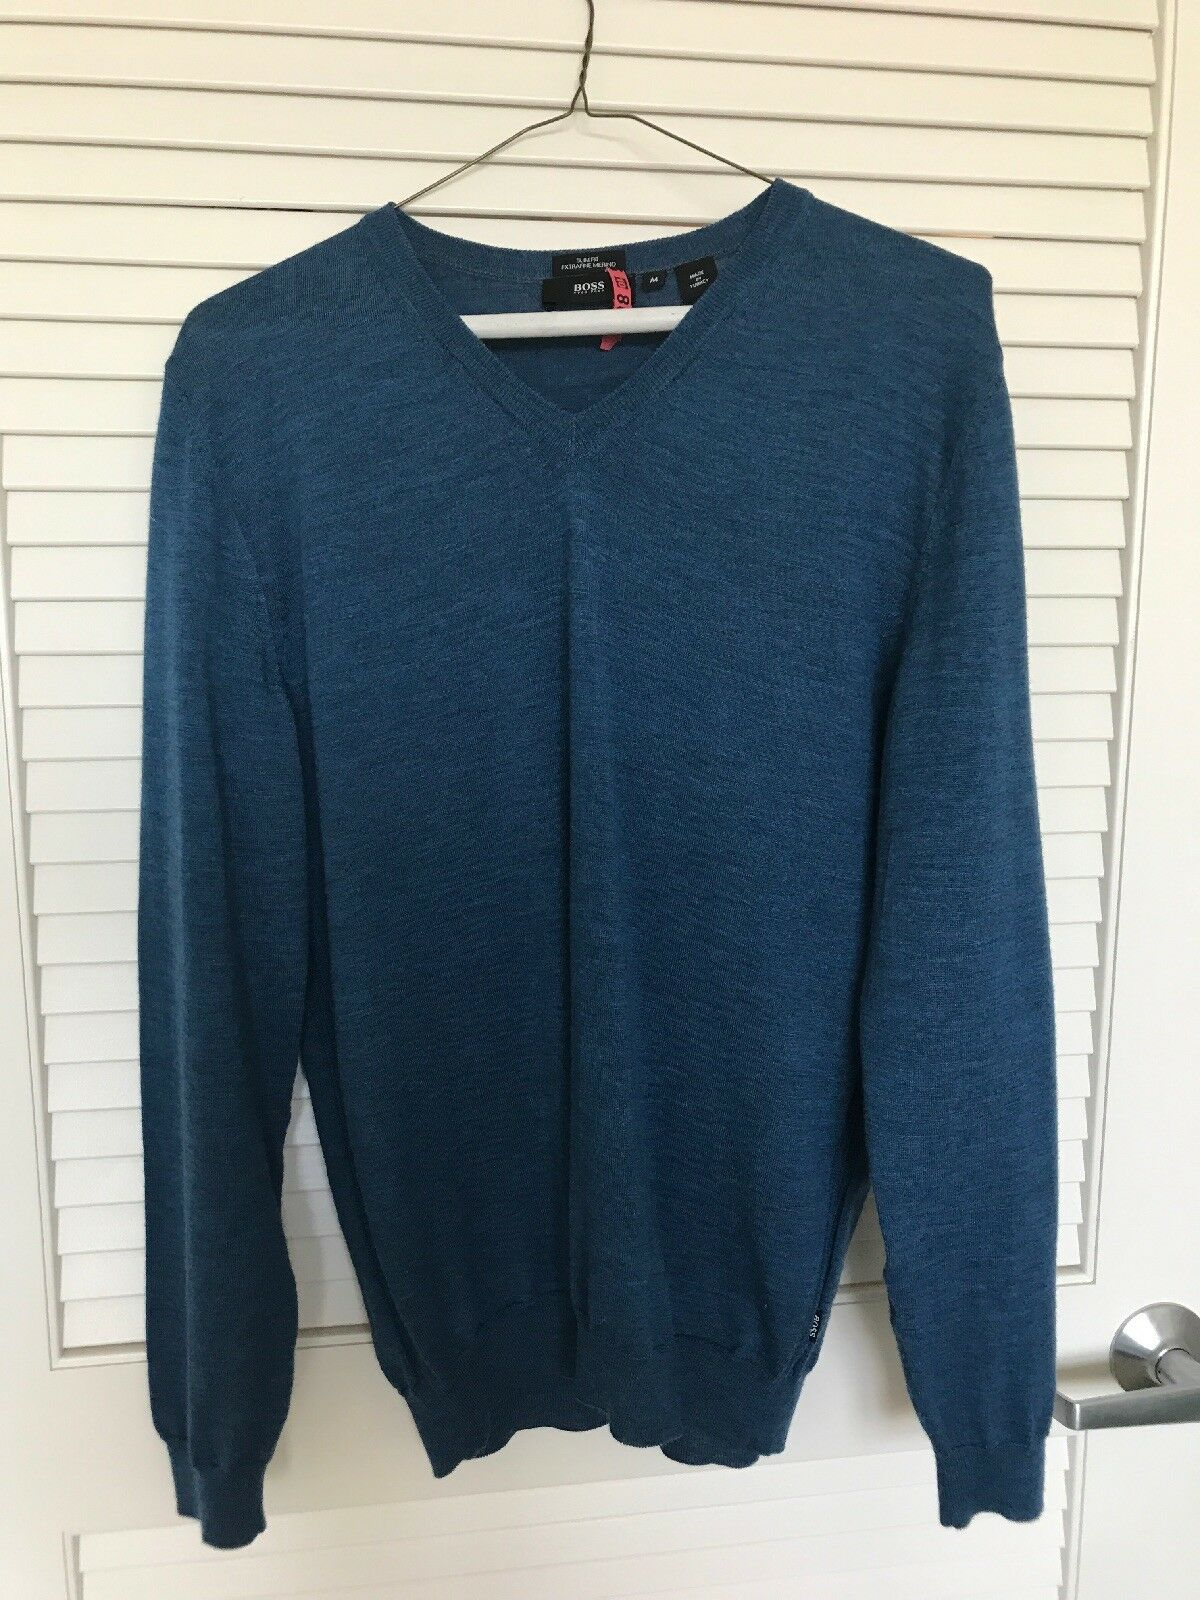 Hugo Boss Men's Size M Dark bluee Sweater Slim Fit Standard Style